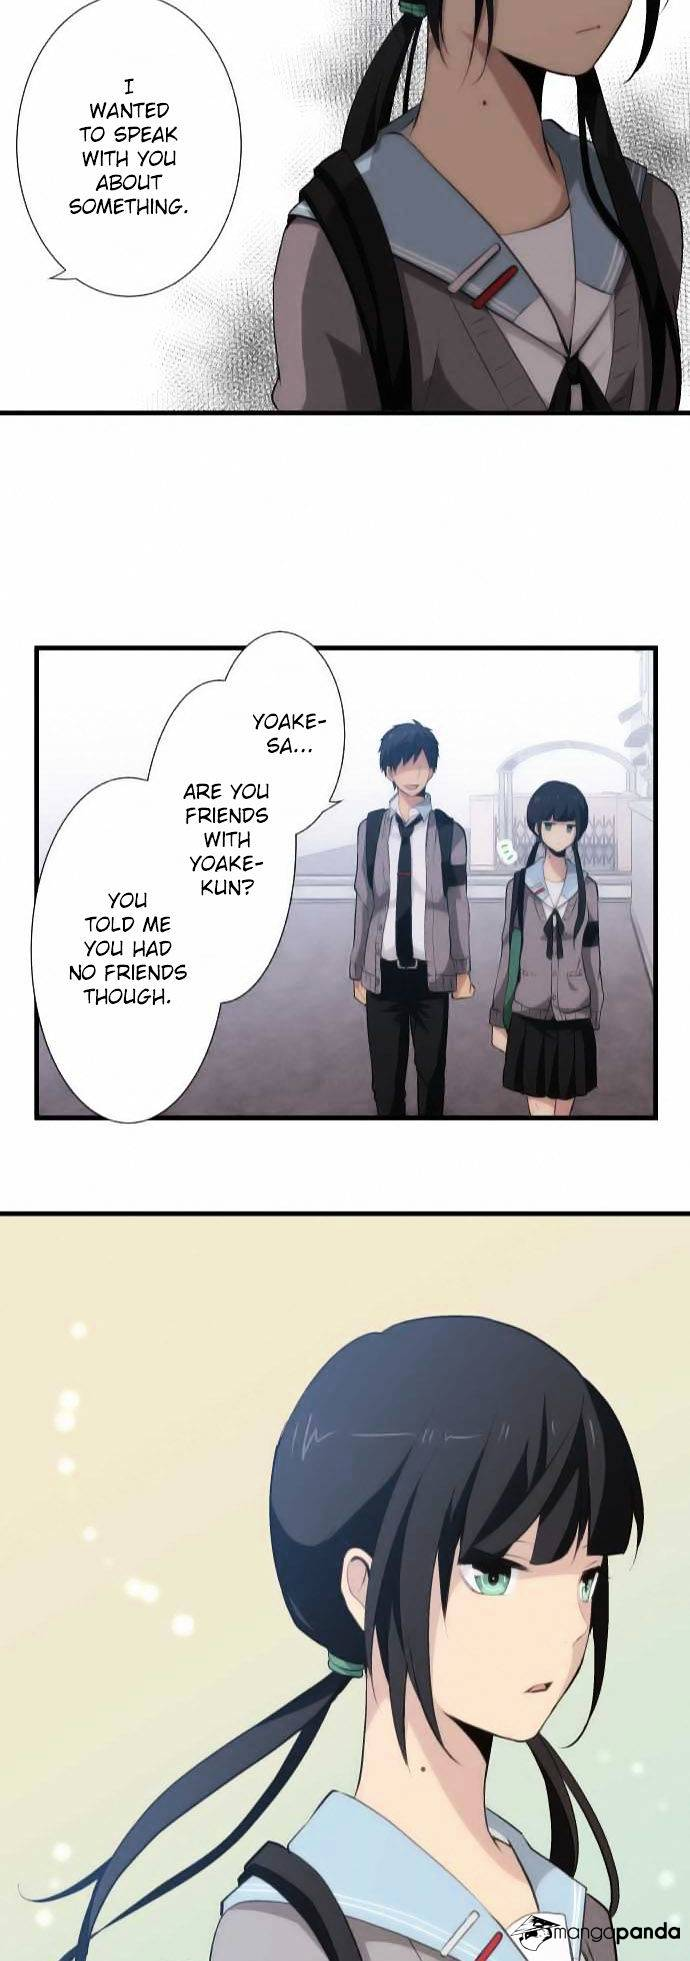 ReLIFE Chapter 55  Online Free Manga Read Image 23